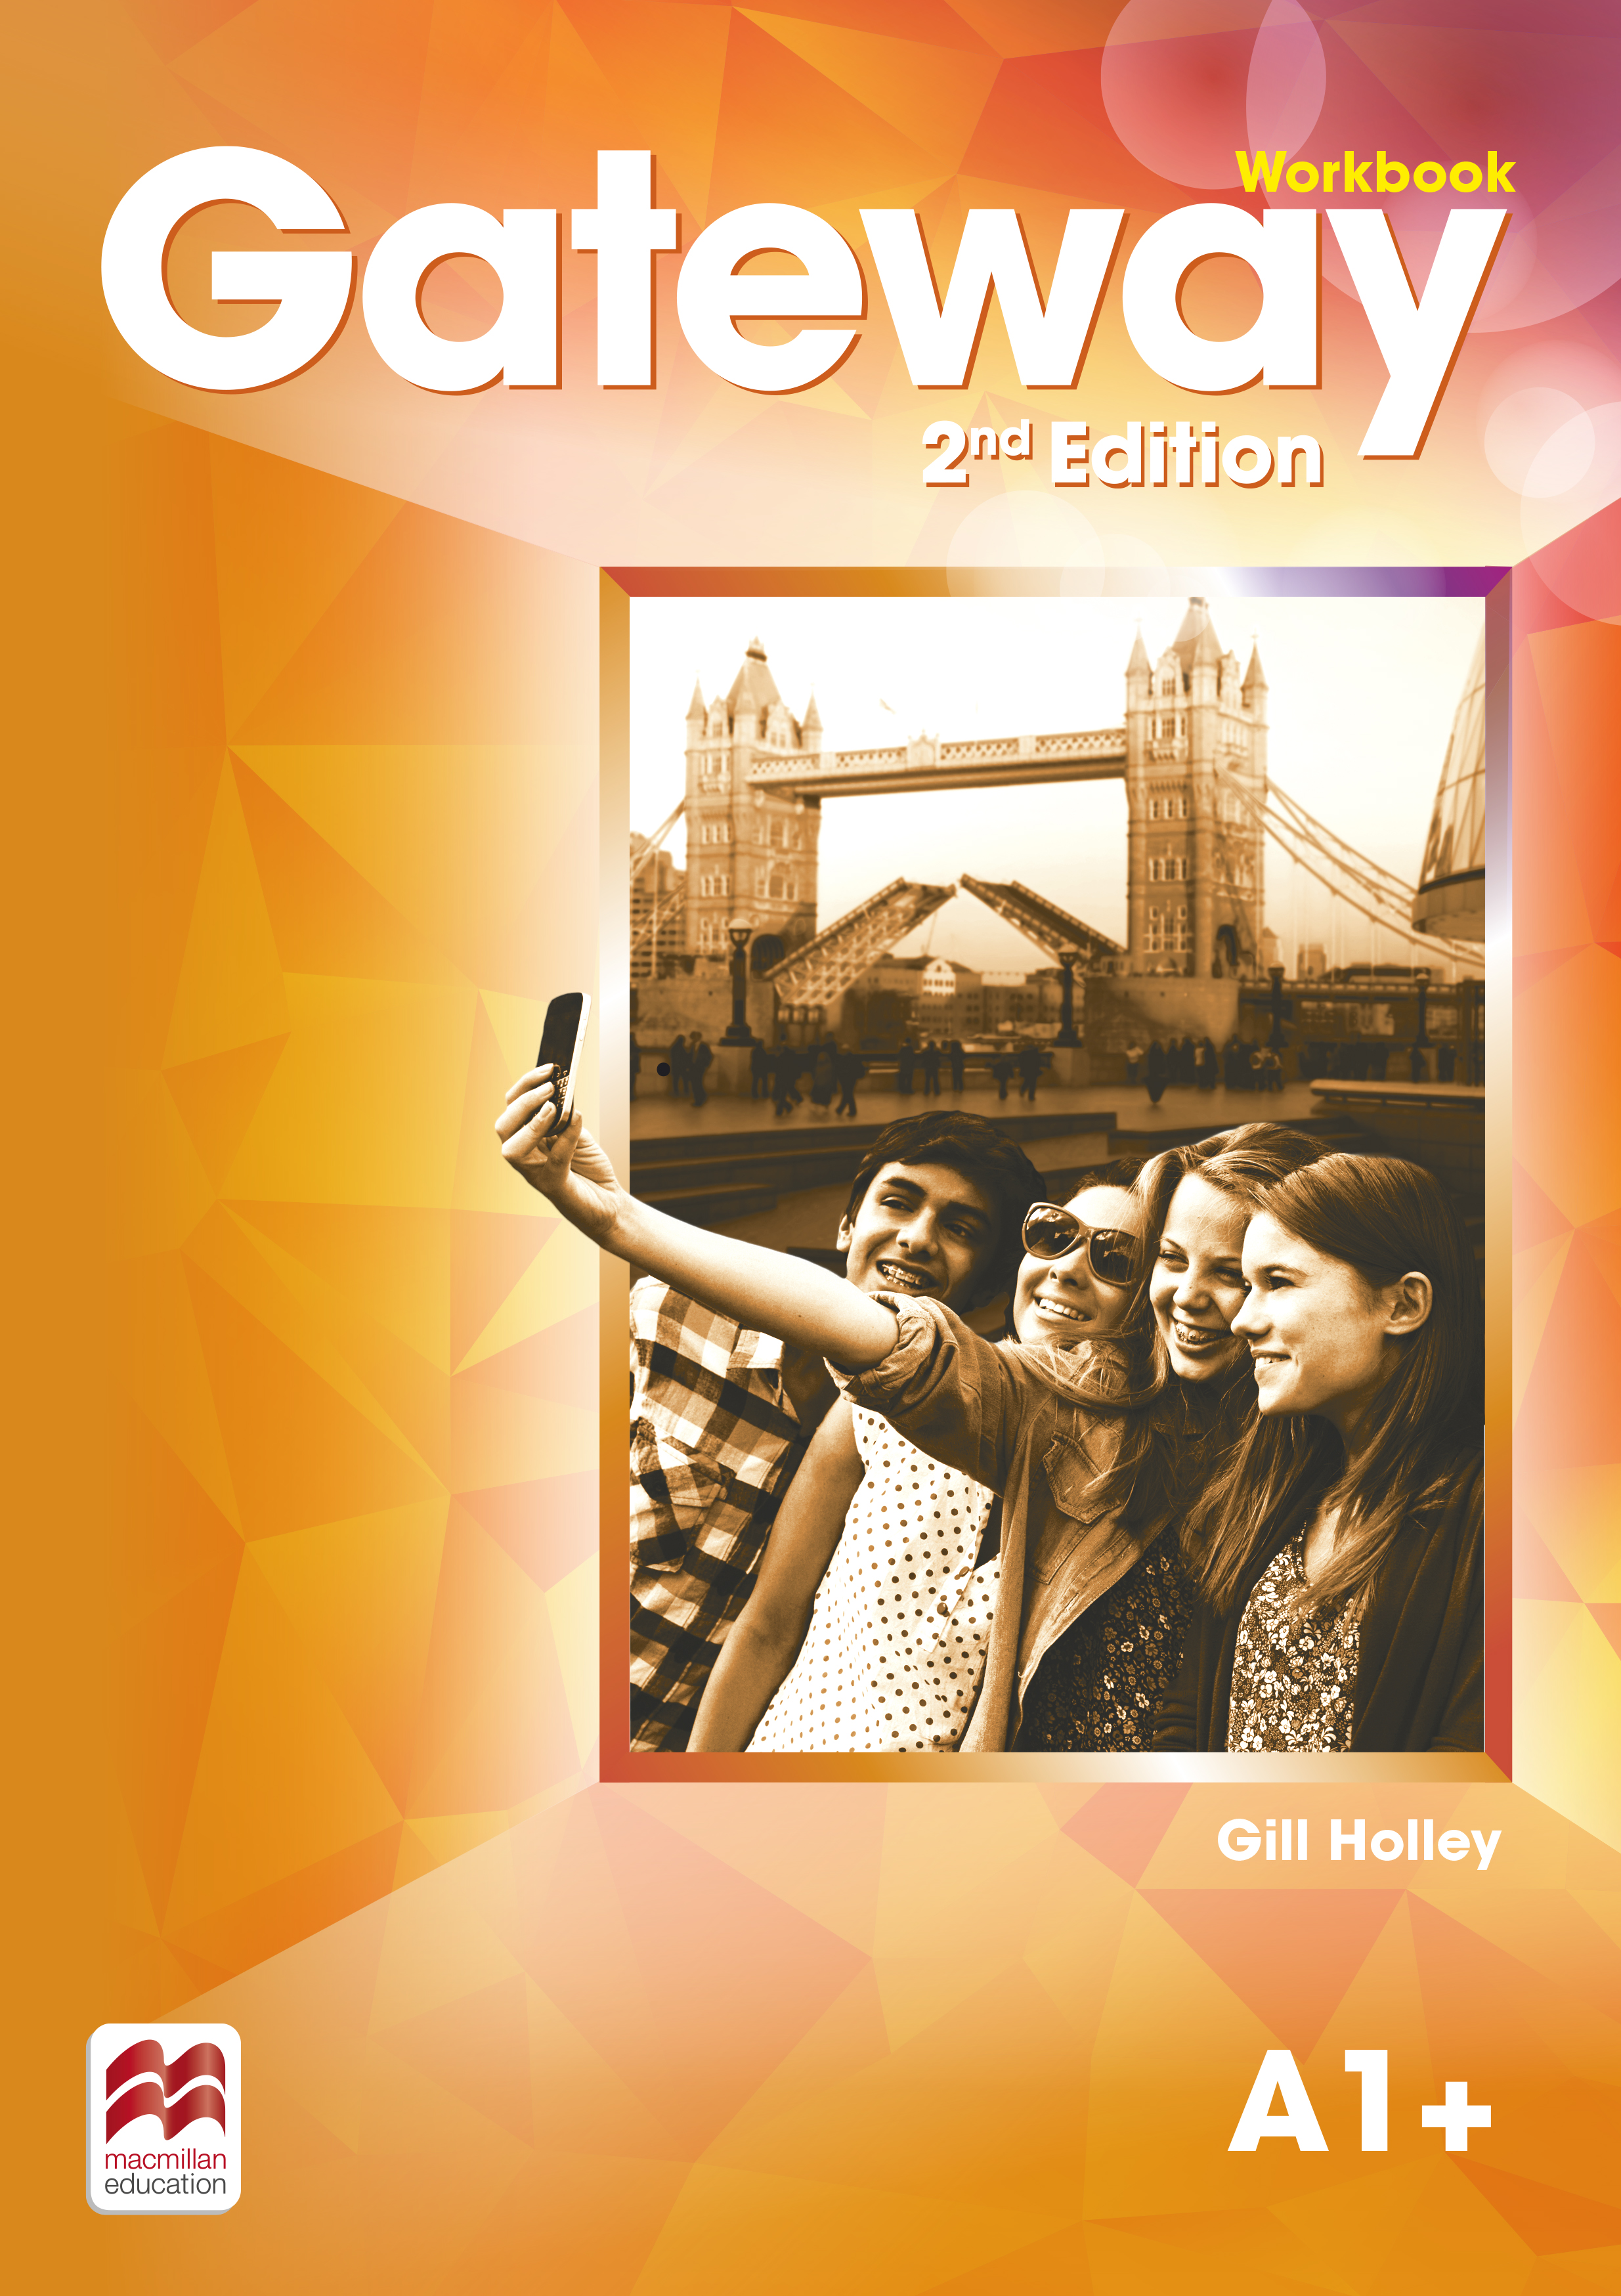 Gateway 2nd Edition A1+ Workbook